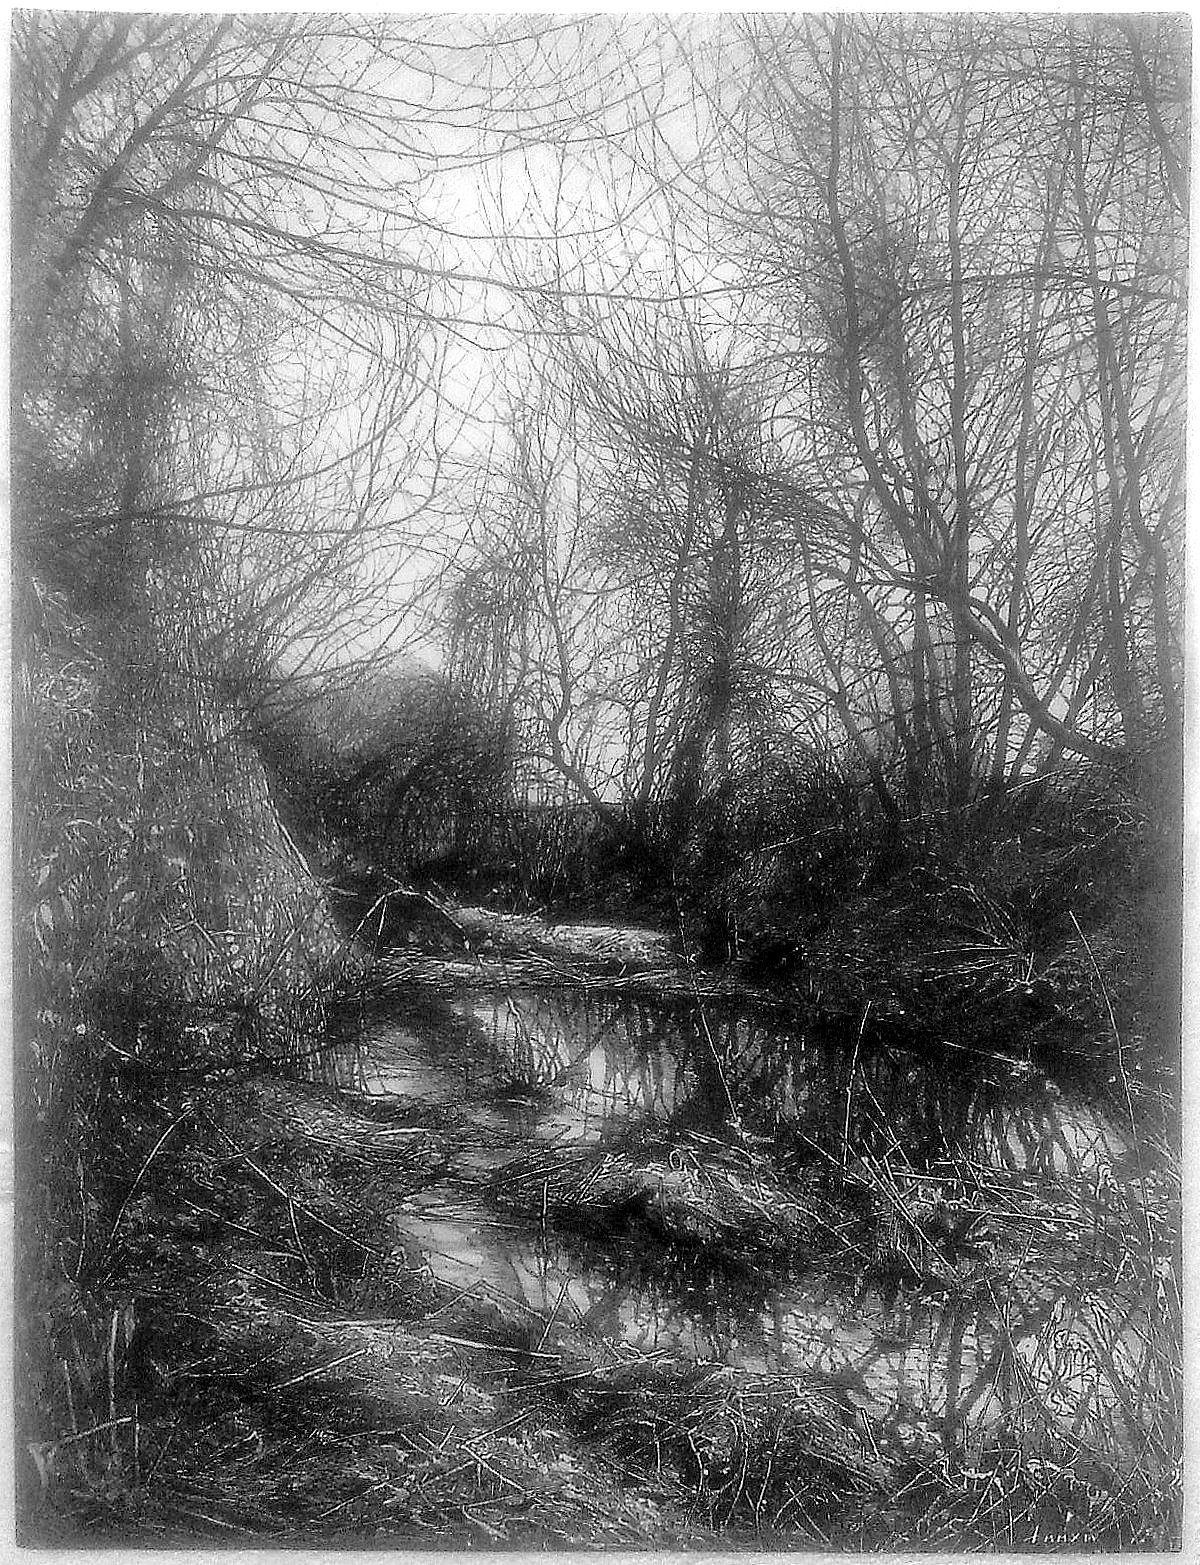 THE LATOR CREEK IN THE LOWLANDS I - Illustration (landscape), MMXIII-MMXIV - Ink on carton - 18,11 X 13,78 in.jpg